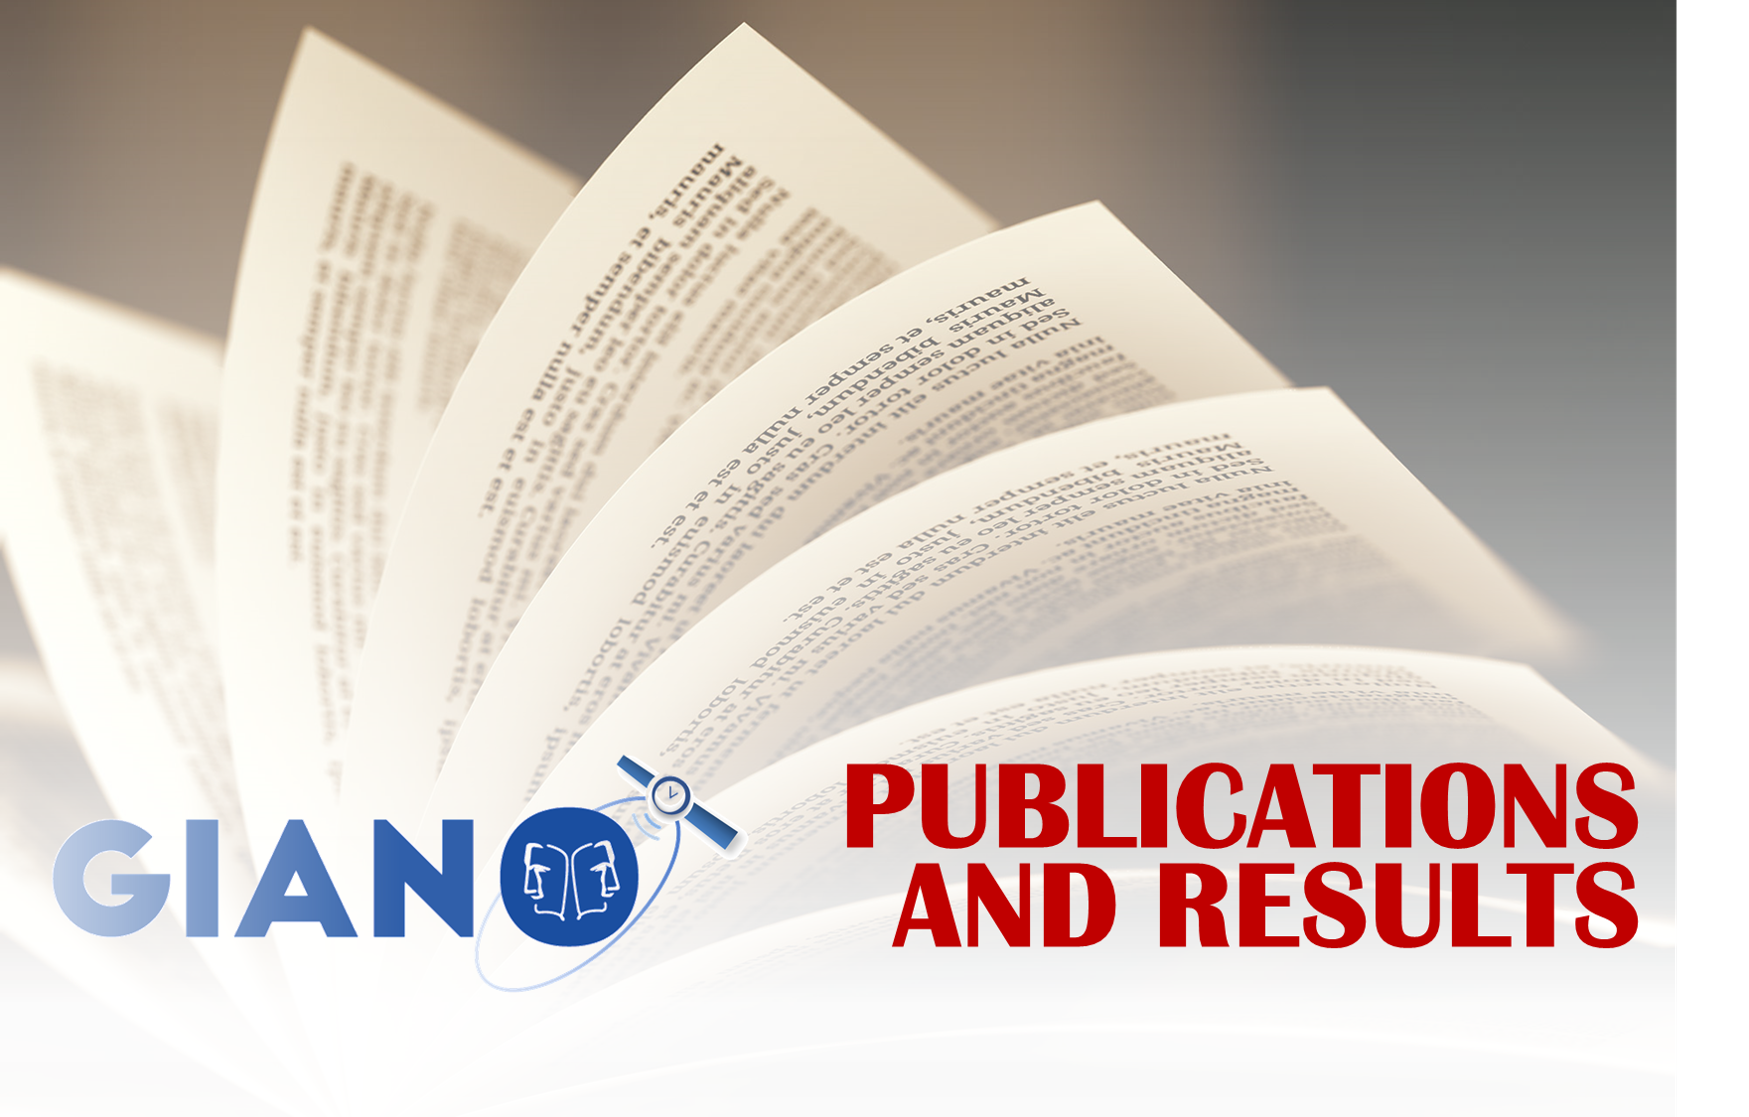 Publications and Results